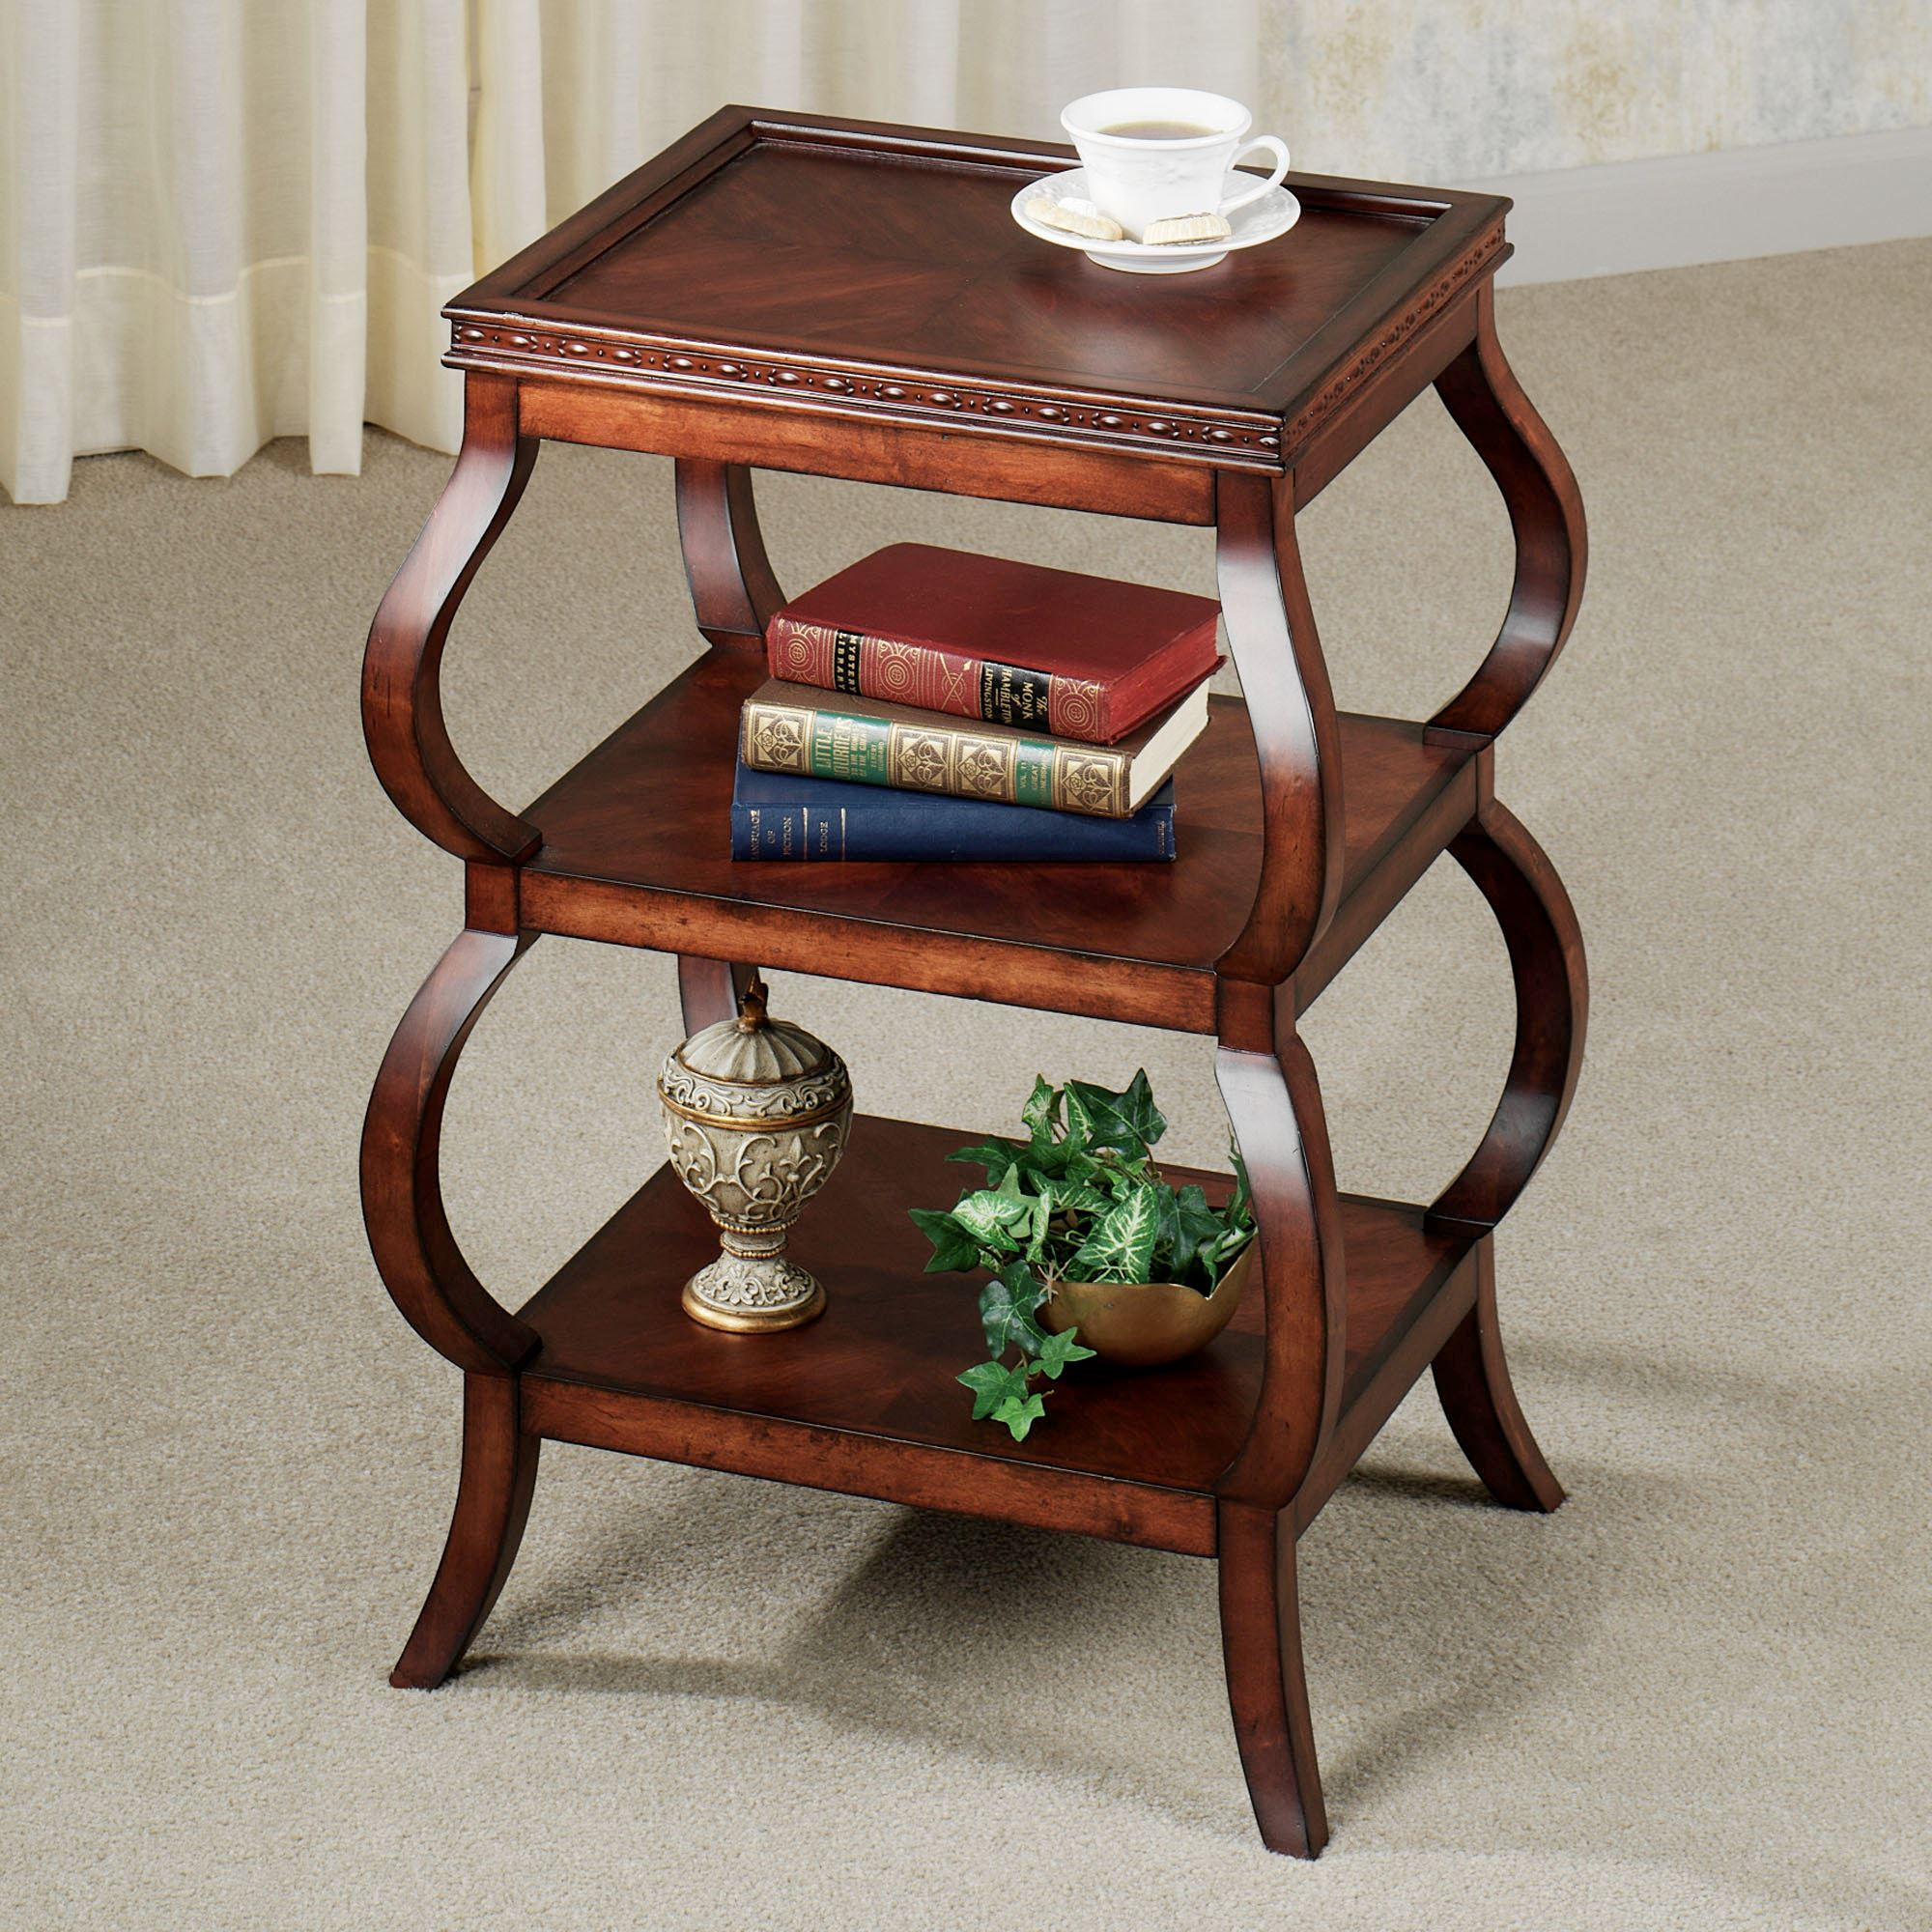 design cherry accent table with tables touch class attractive kirklands end stand living room coffee decor home goods dining modern and chairs meyda tiffany great round bar stools